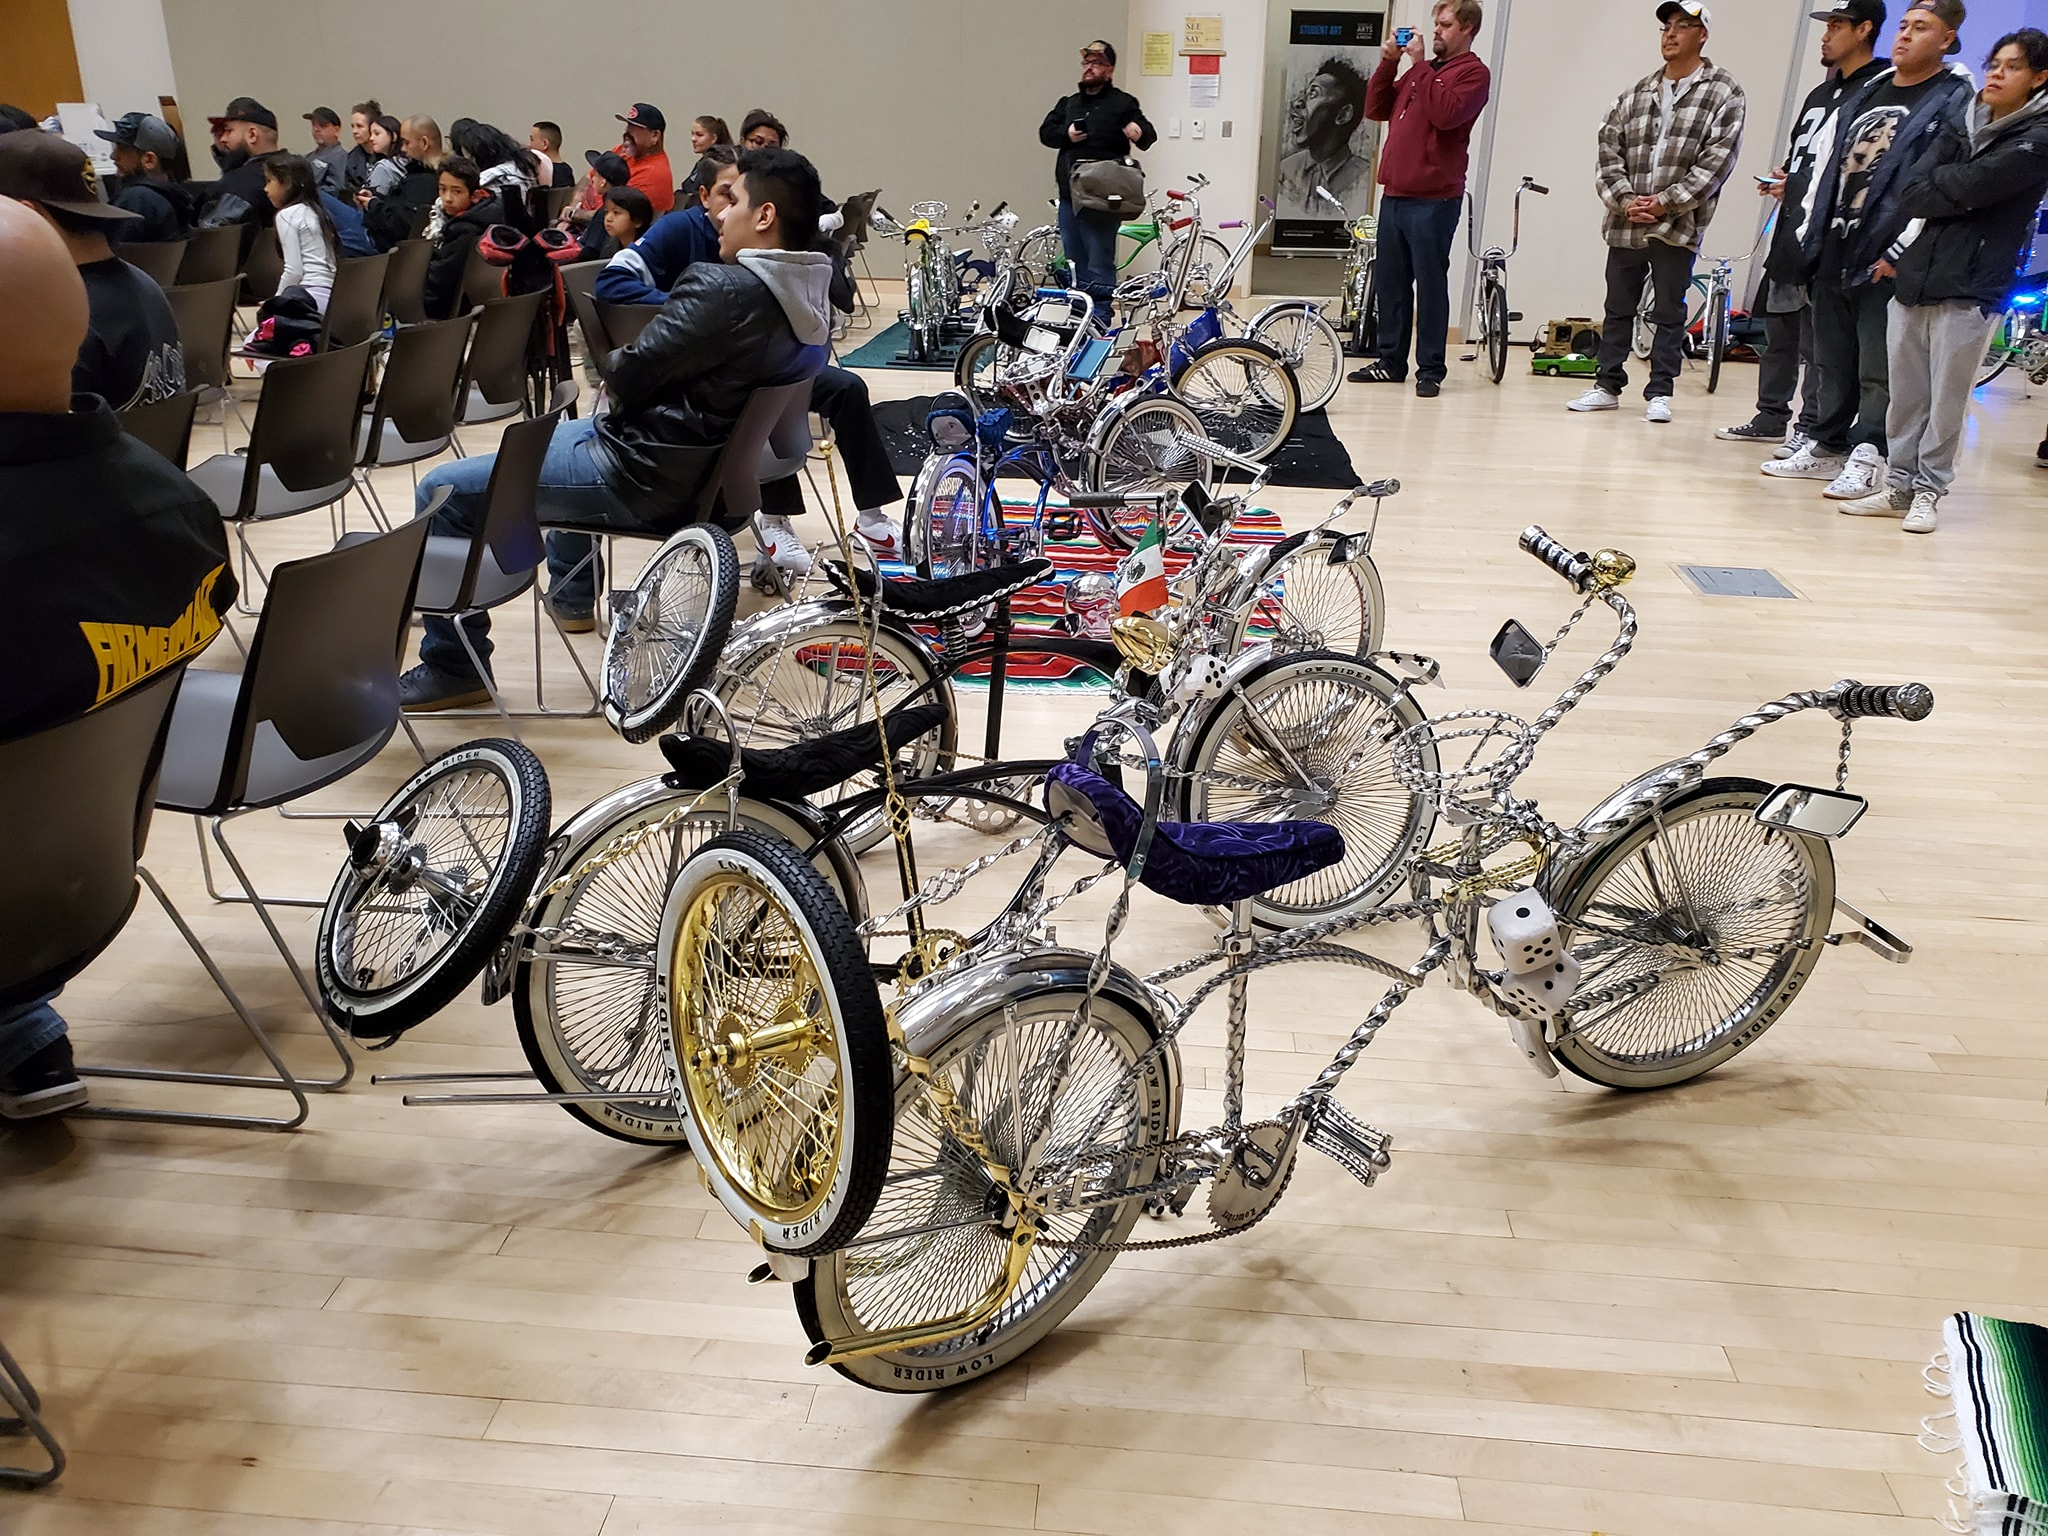 Row of bicycles on display in auditorium